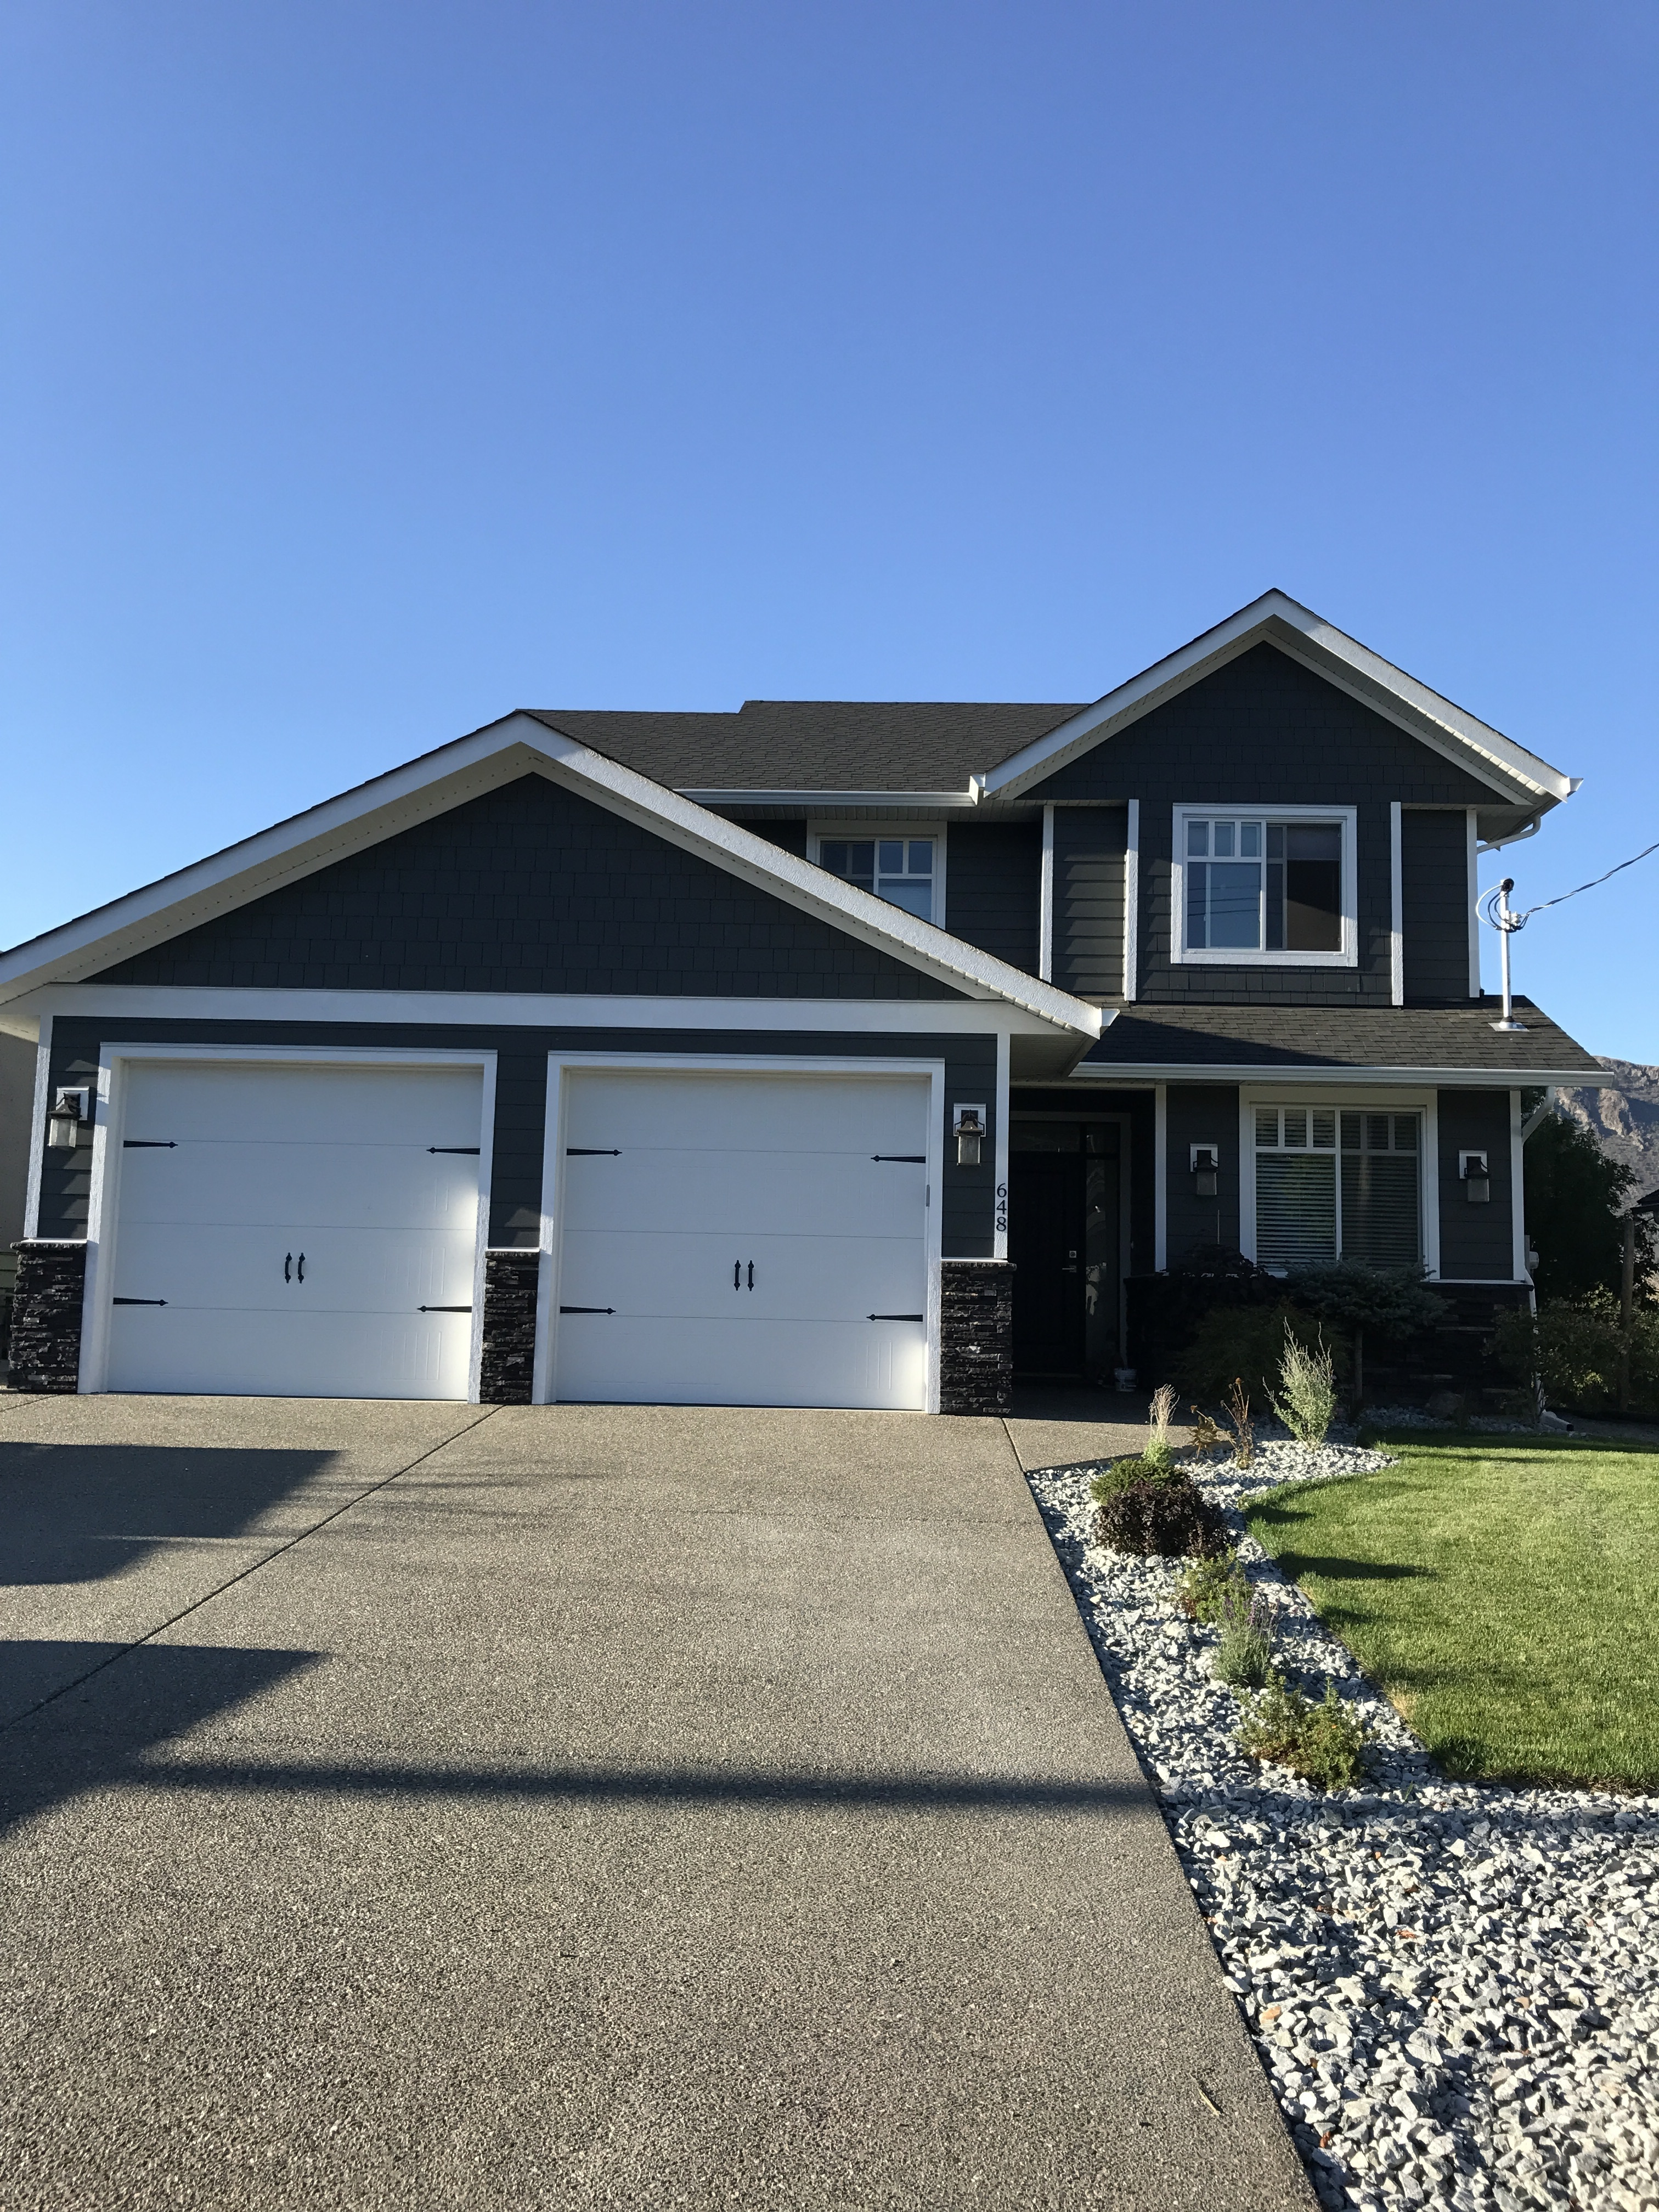 4 Bdrm in central BC available for Christmas 2018 Home Exchange